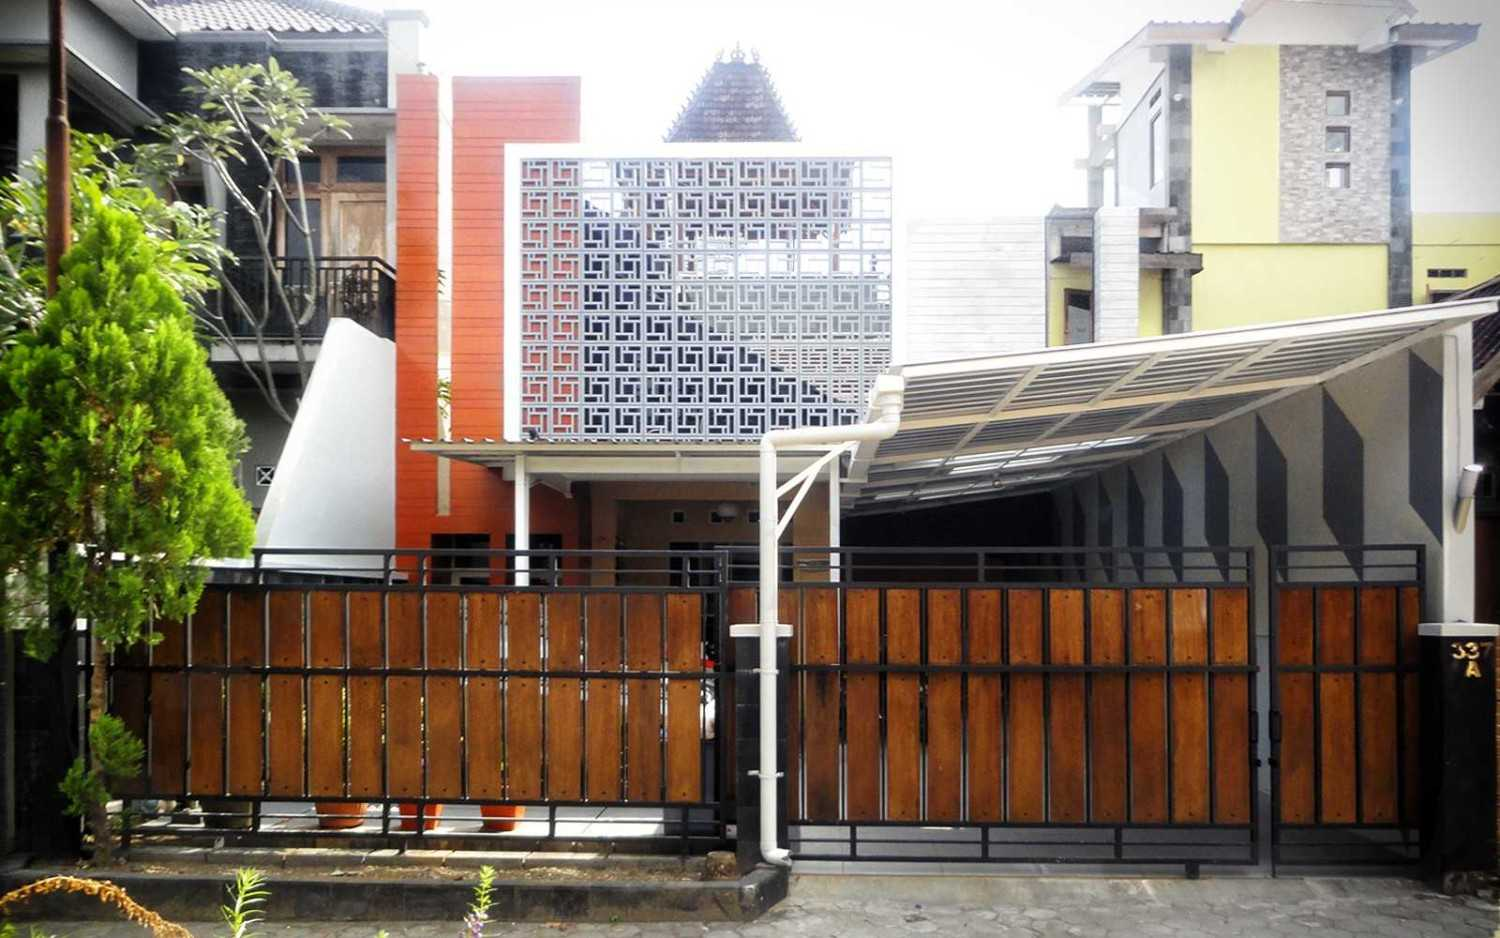 Jasa Design and Build studioindoNEOsia di Yogyakarta